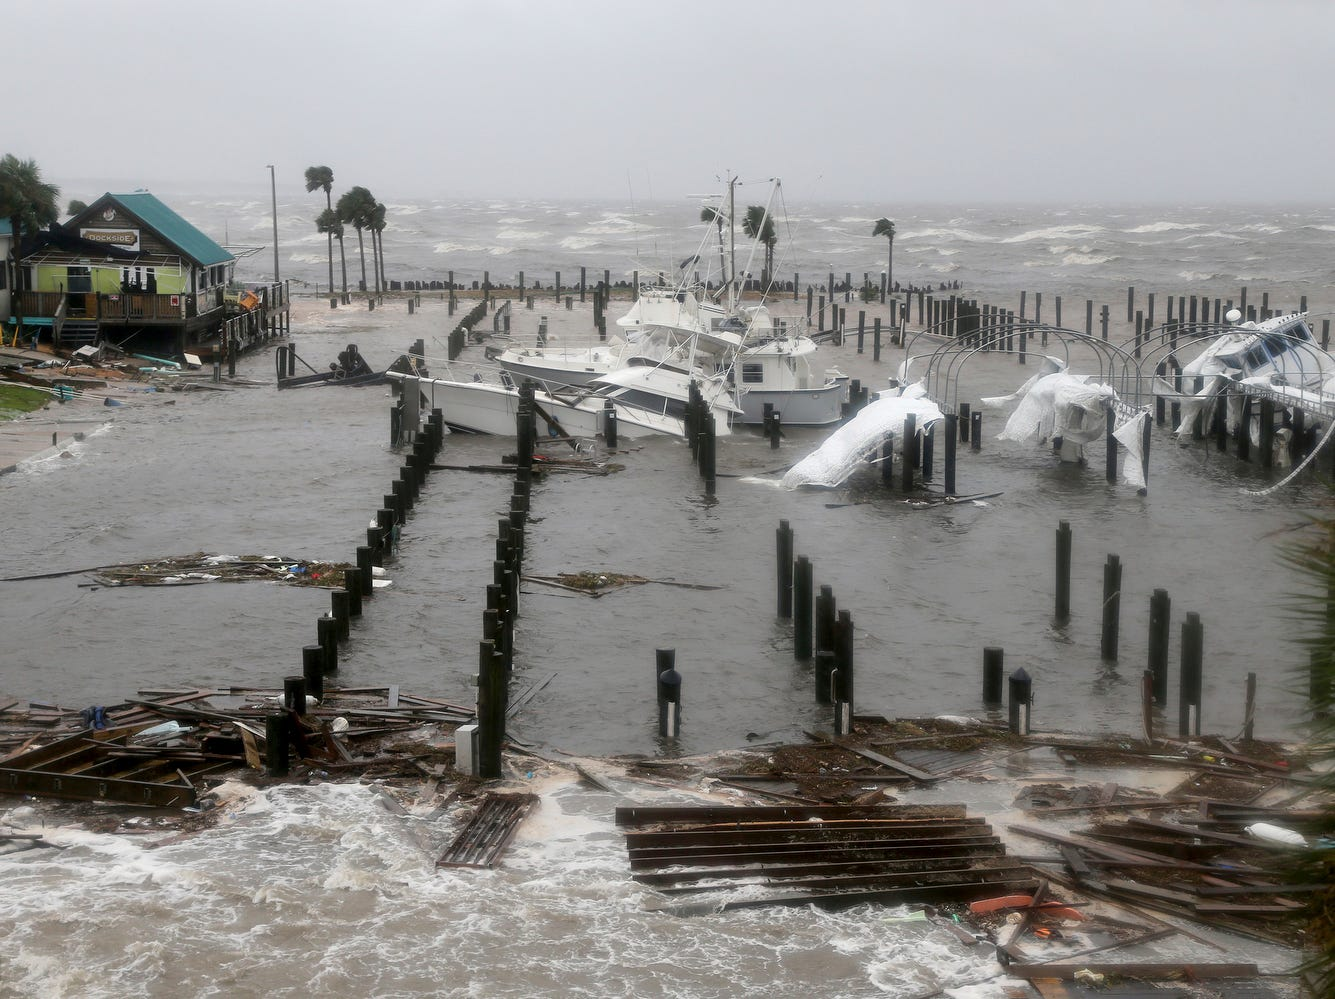 Storm surge retreats from inland areas, foreground, where boats lay sunk and damaged at the Port St. Joe Marina, on Wednesday, in Port St. Joe, Fla. Supercharged by abnormally warm waters in the Gulf of Mexico, Hurricane Michael slammed into the Florida Panhandle with terrifying winds of 155 mph, splintering homes and submerging neighborhoods.